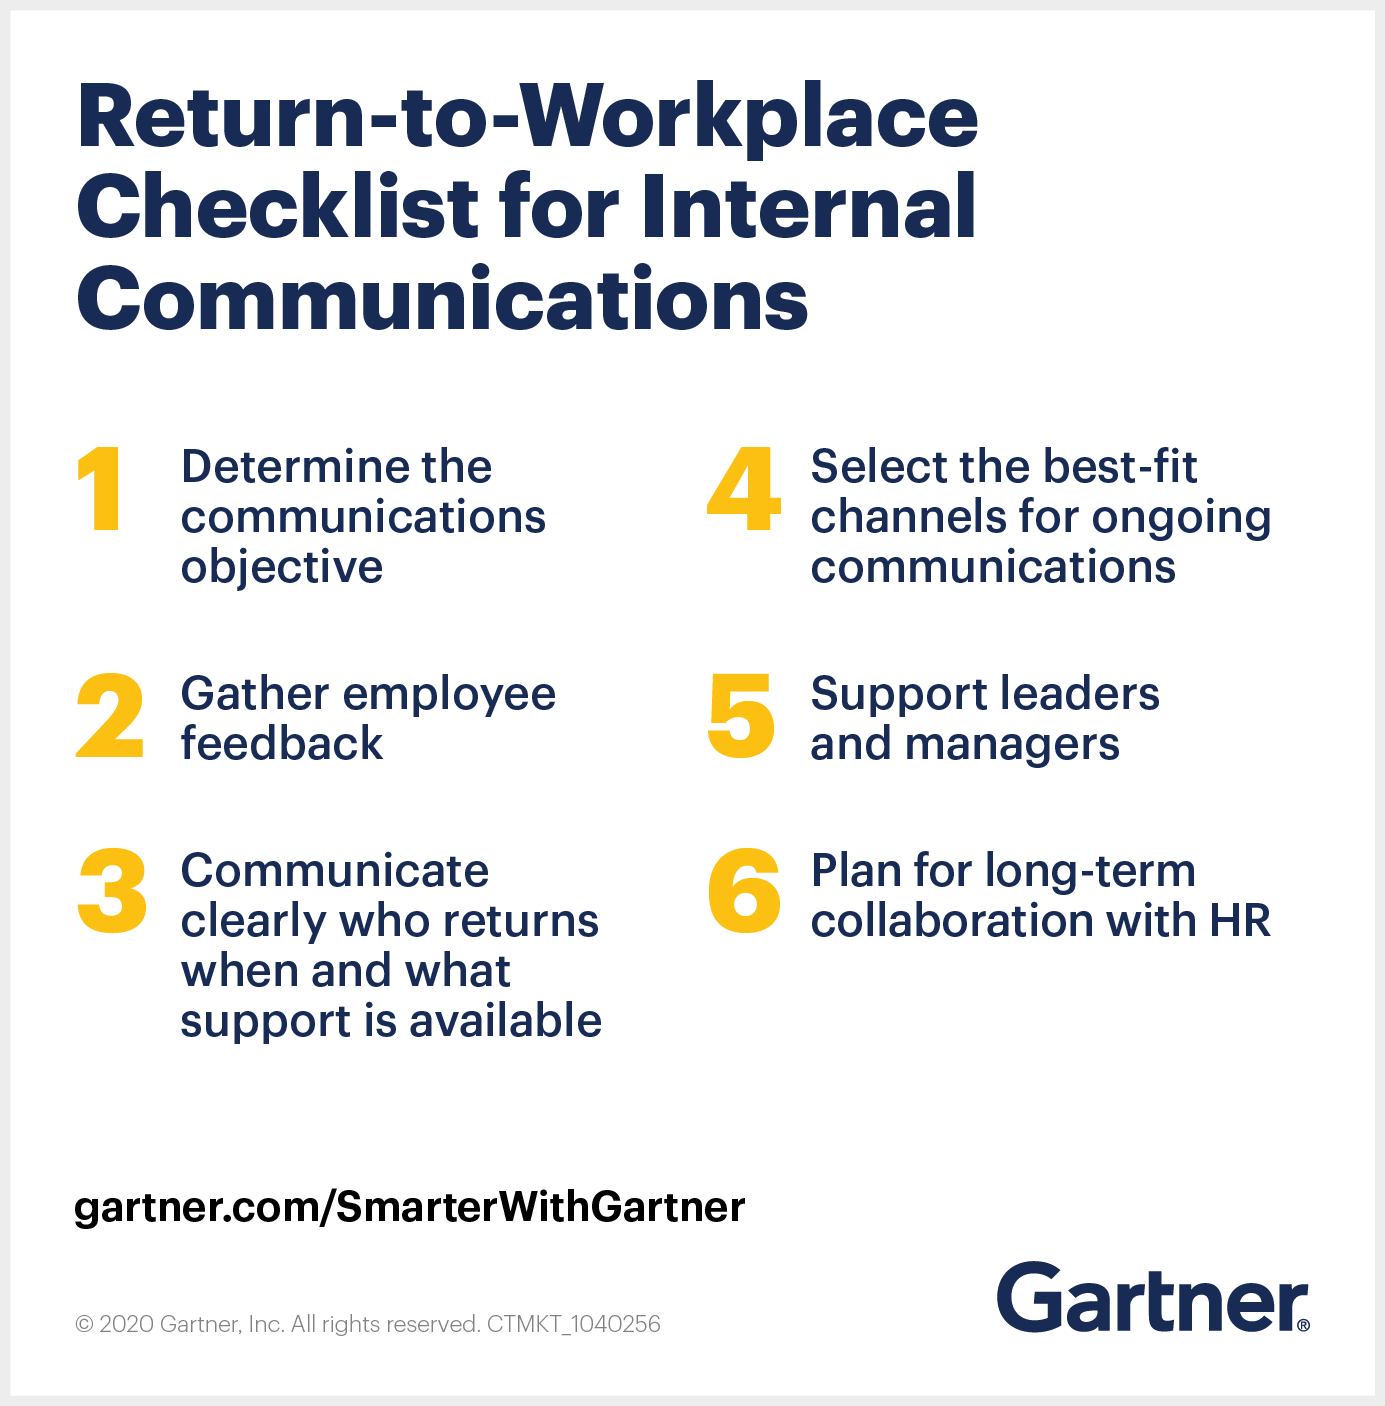 Gartner provides a return-to-workplace checklist for internal communications